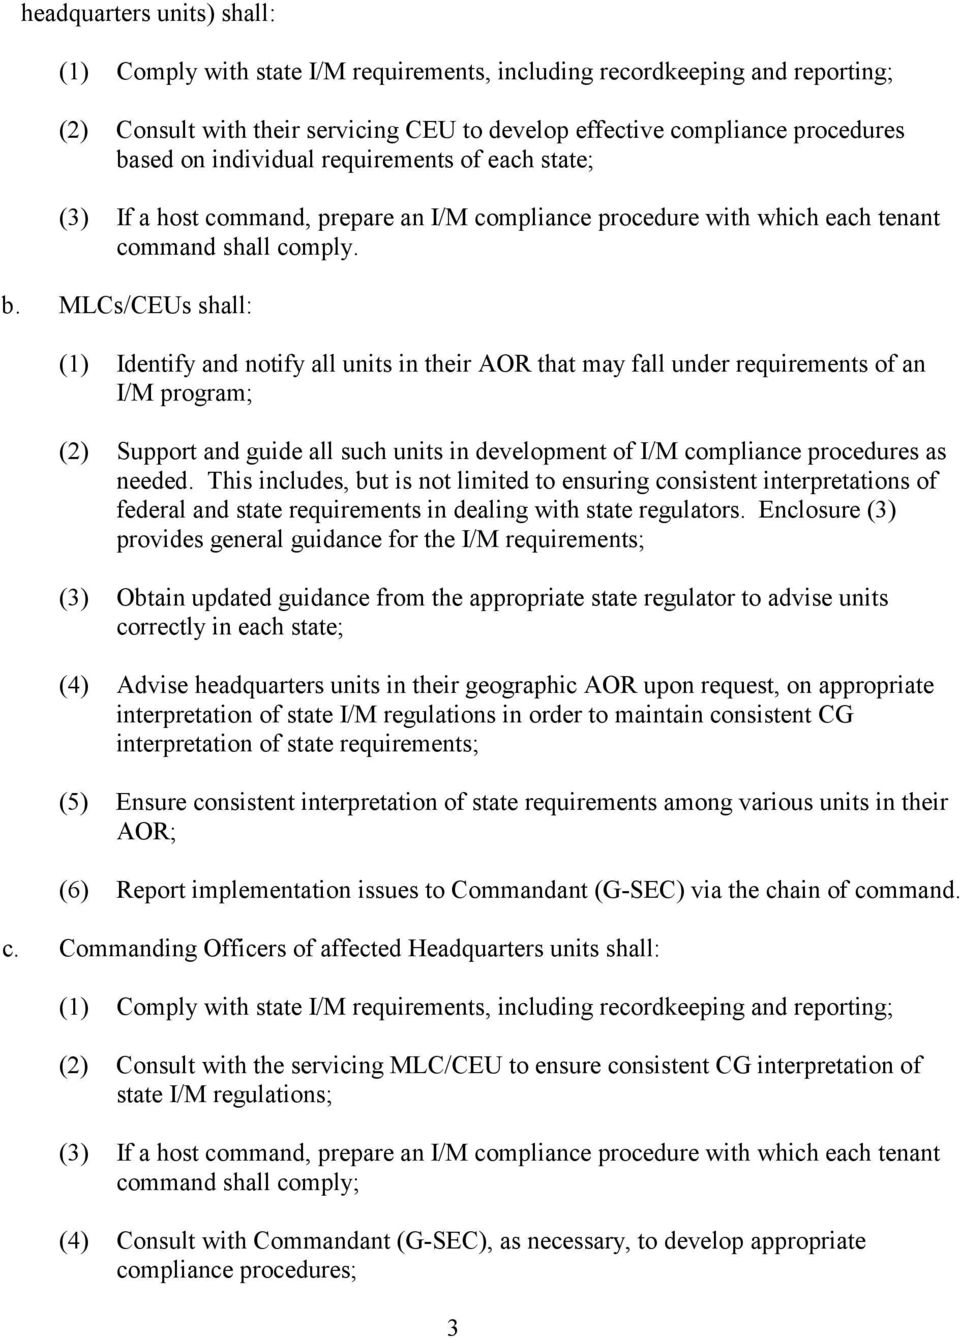 MLCs/CEUs shall: (1) Identify and notify all units in their AOR that may fall under requirements of an I/M program; (2) Support and guide all such units in development of I/M compliance procedures as